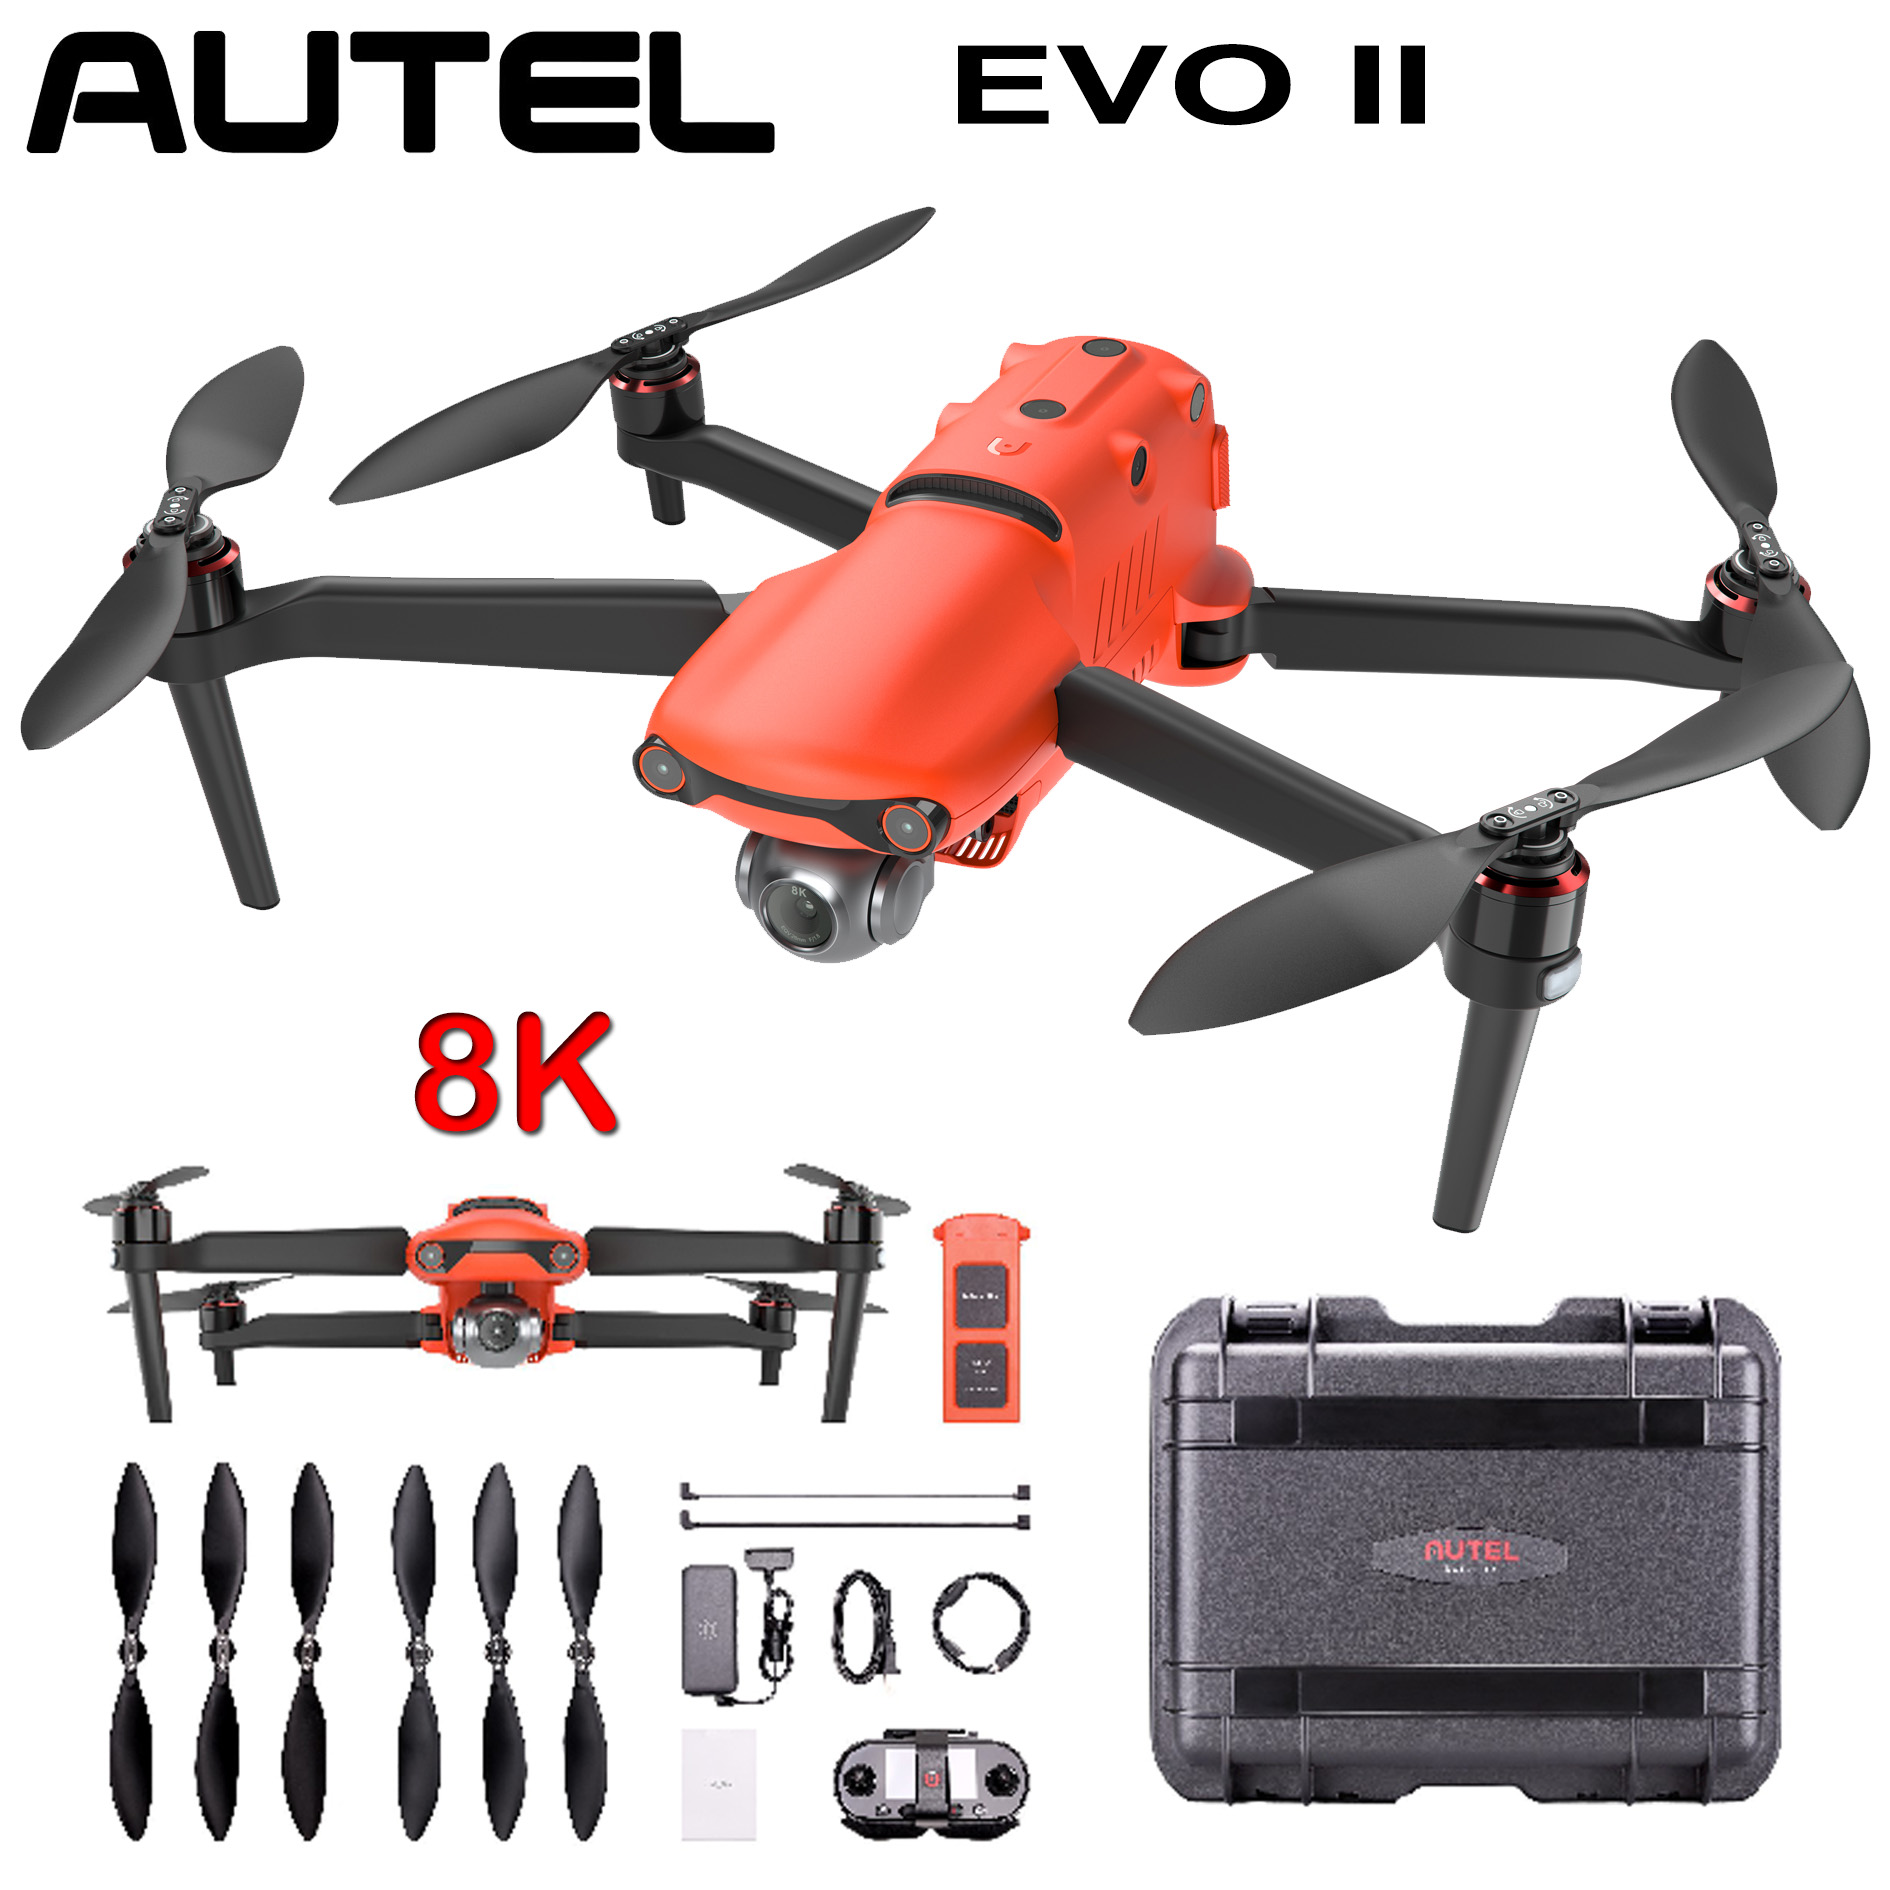 Brand New Autel Robotics EVO Drone Quadcopter Camera 8K 60fps Ultra HD Video Photos Portable(Set Edition image